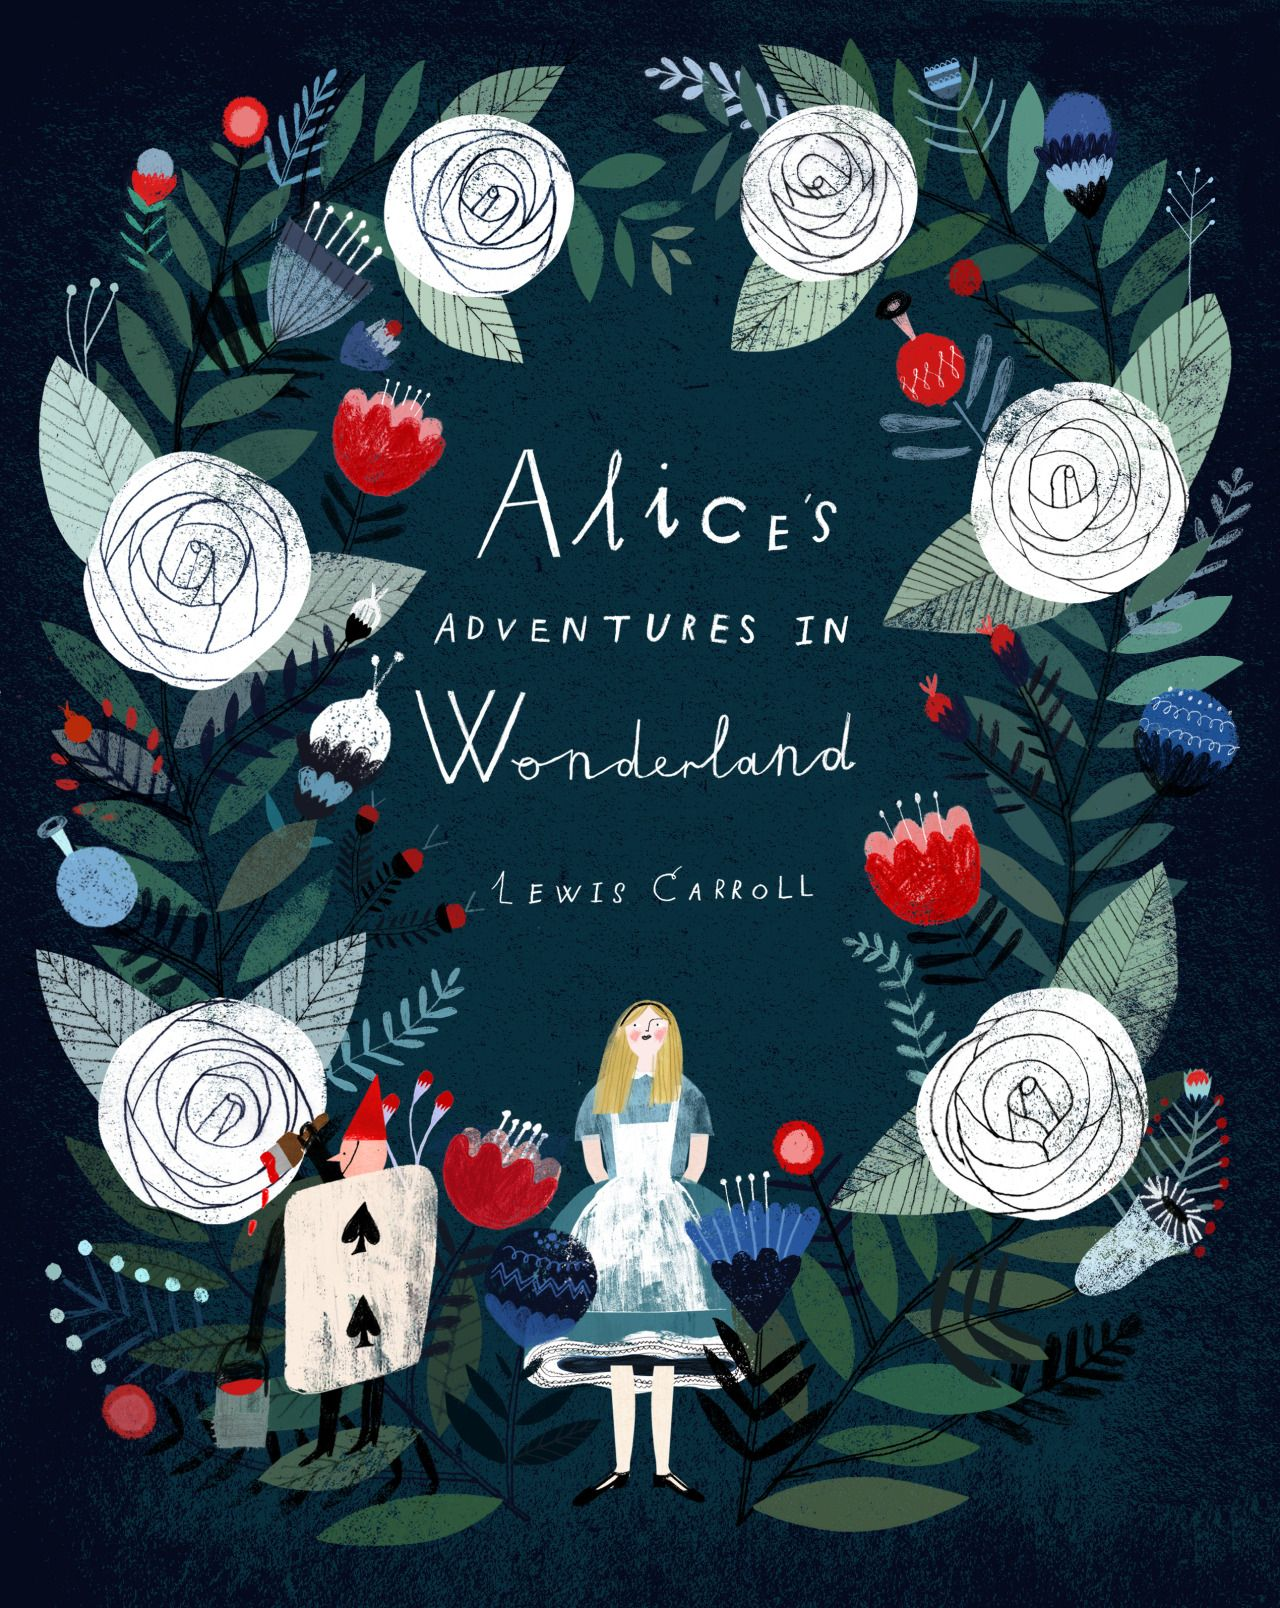 Alice's Adventures in Wonderland by Lewis Carroll (Design by Grace Easton)